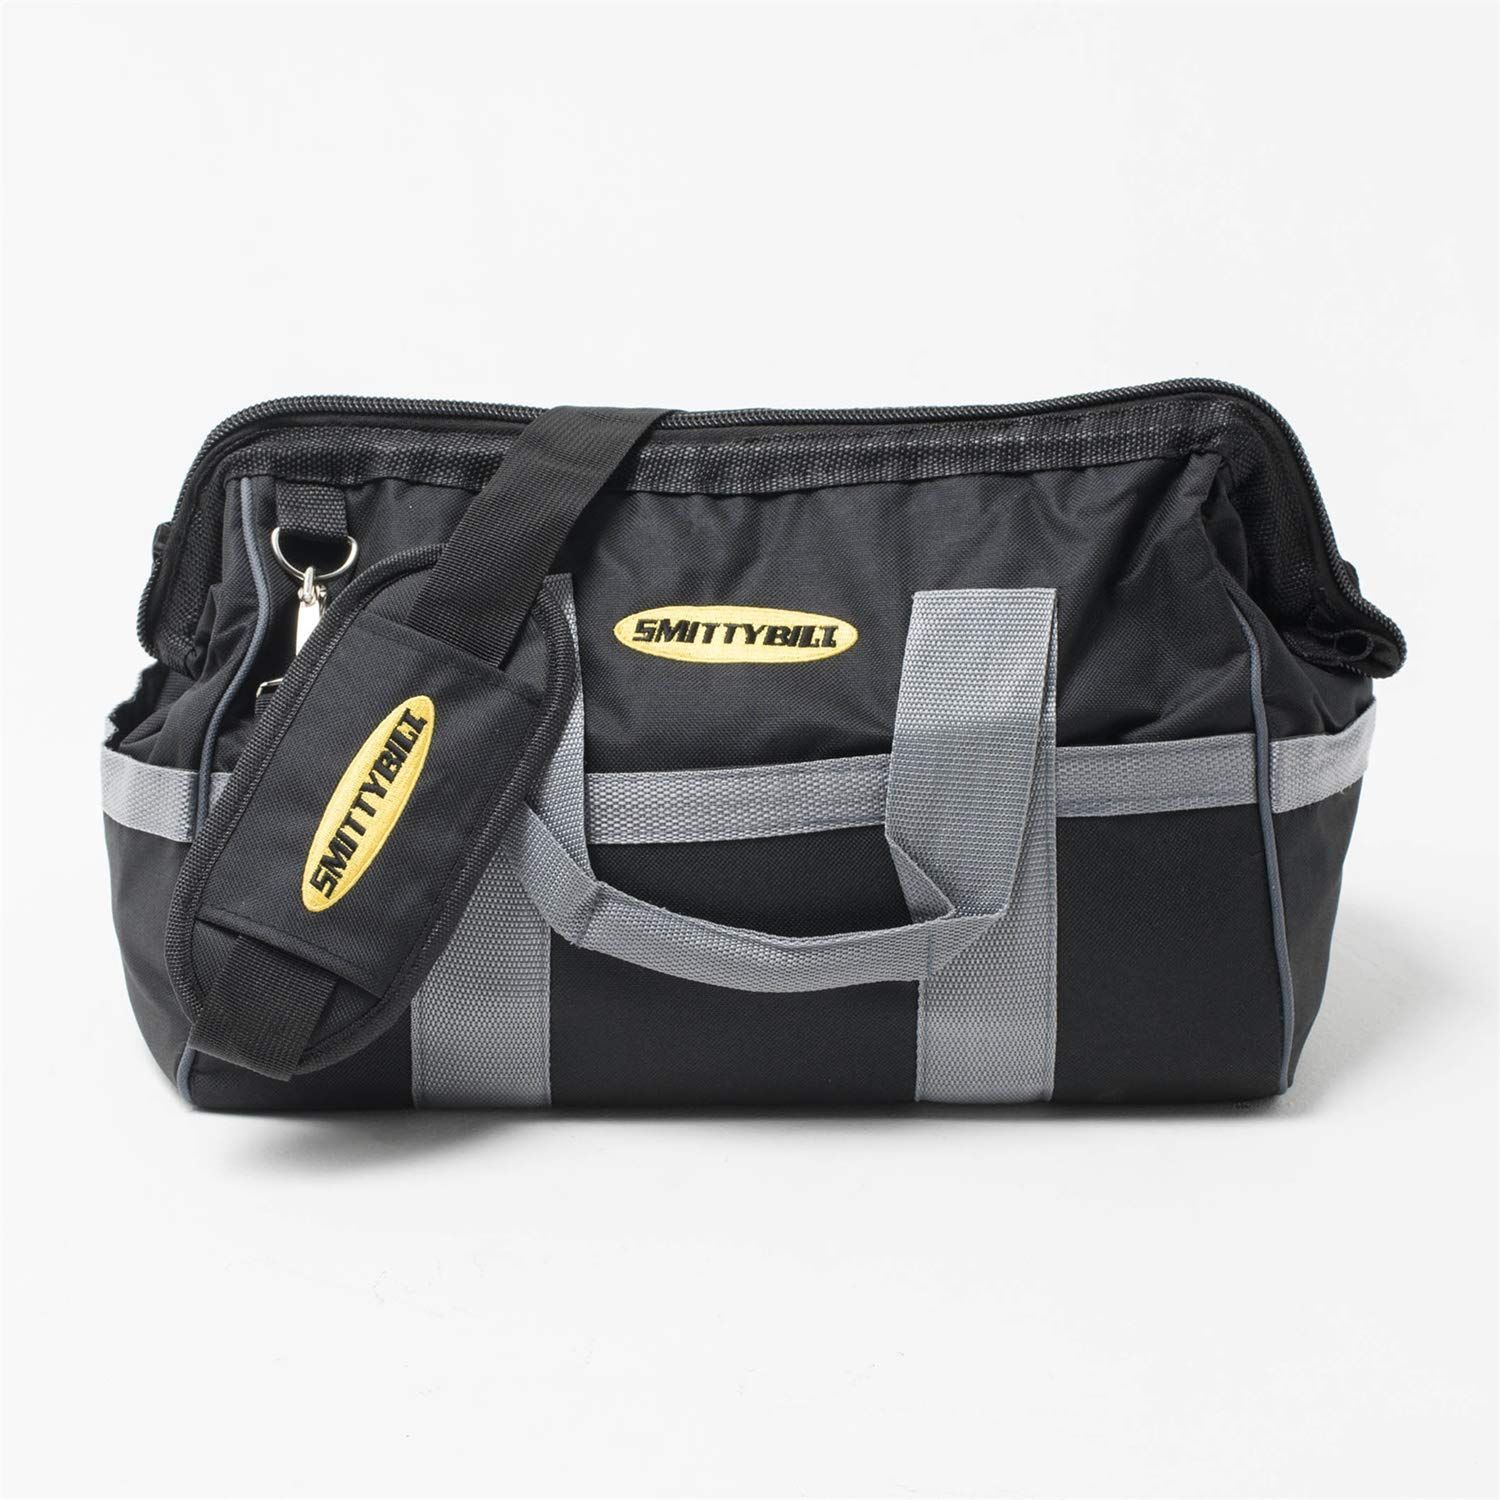 Smittybilt 2725 Premium Winch Acc Bag Universal Want Additional Info Click On The Image This Is An Affiliate Link In 2020 Bags Smittybilt Bag Accessories